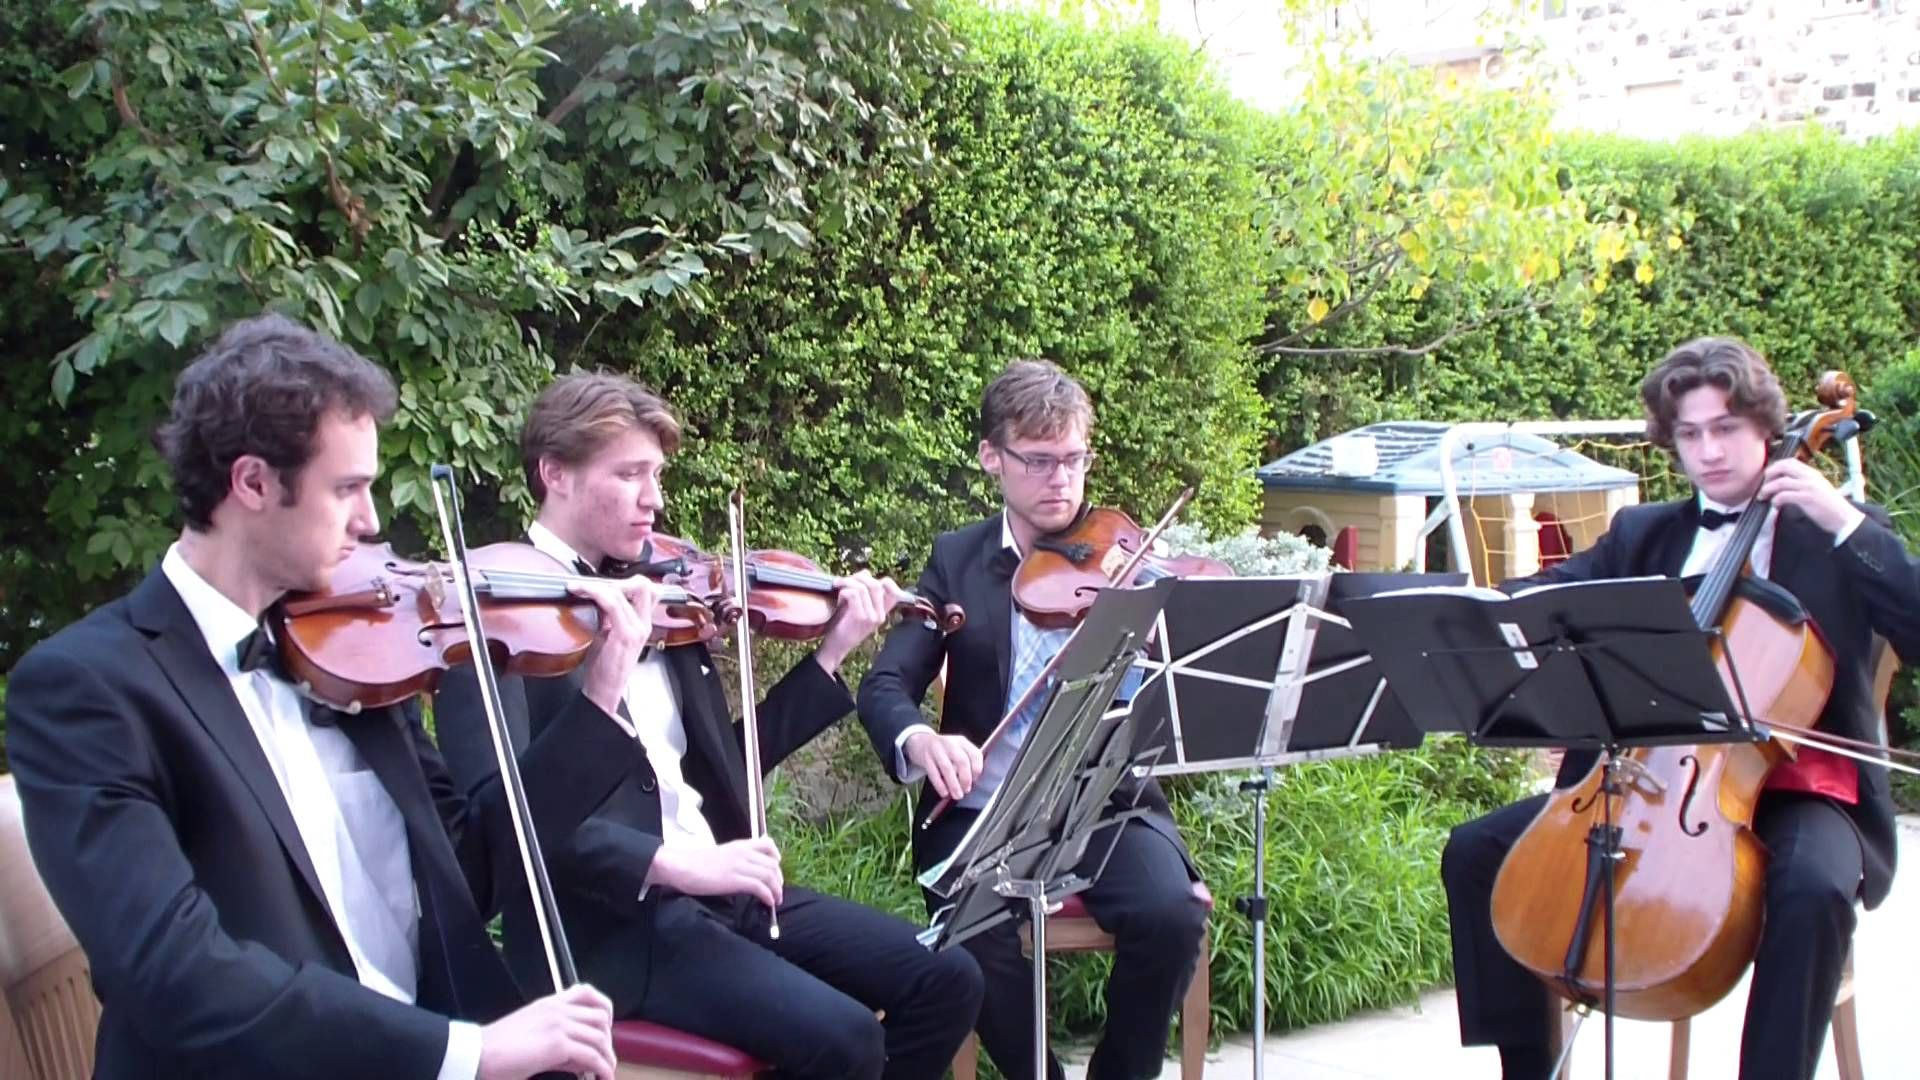 Pin on STRING QUARTETS FOR YOUR WEDDING IN ISRAEL